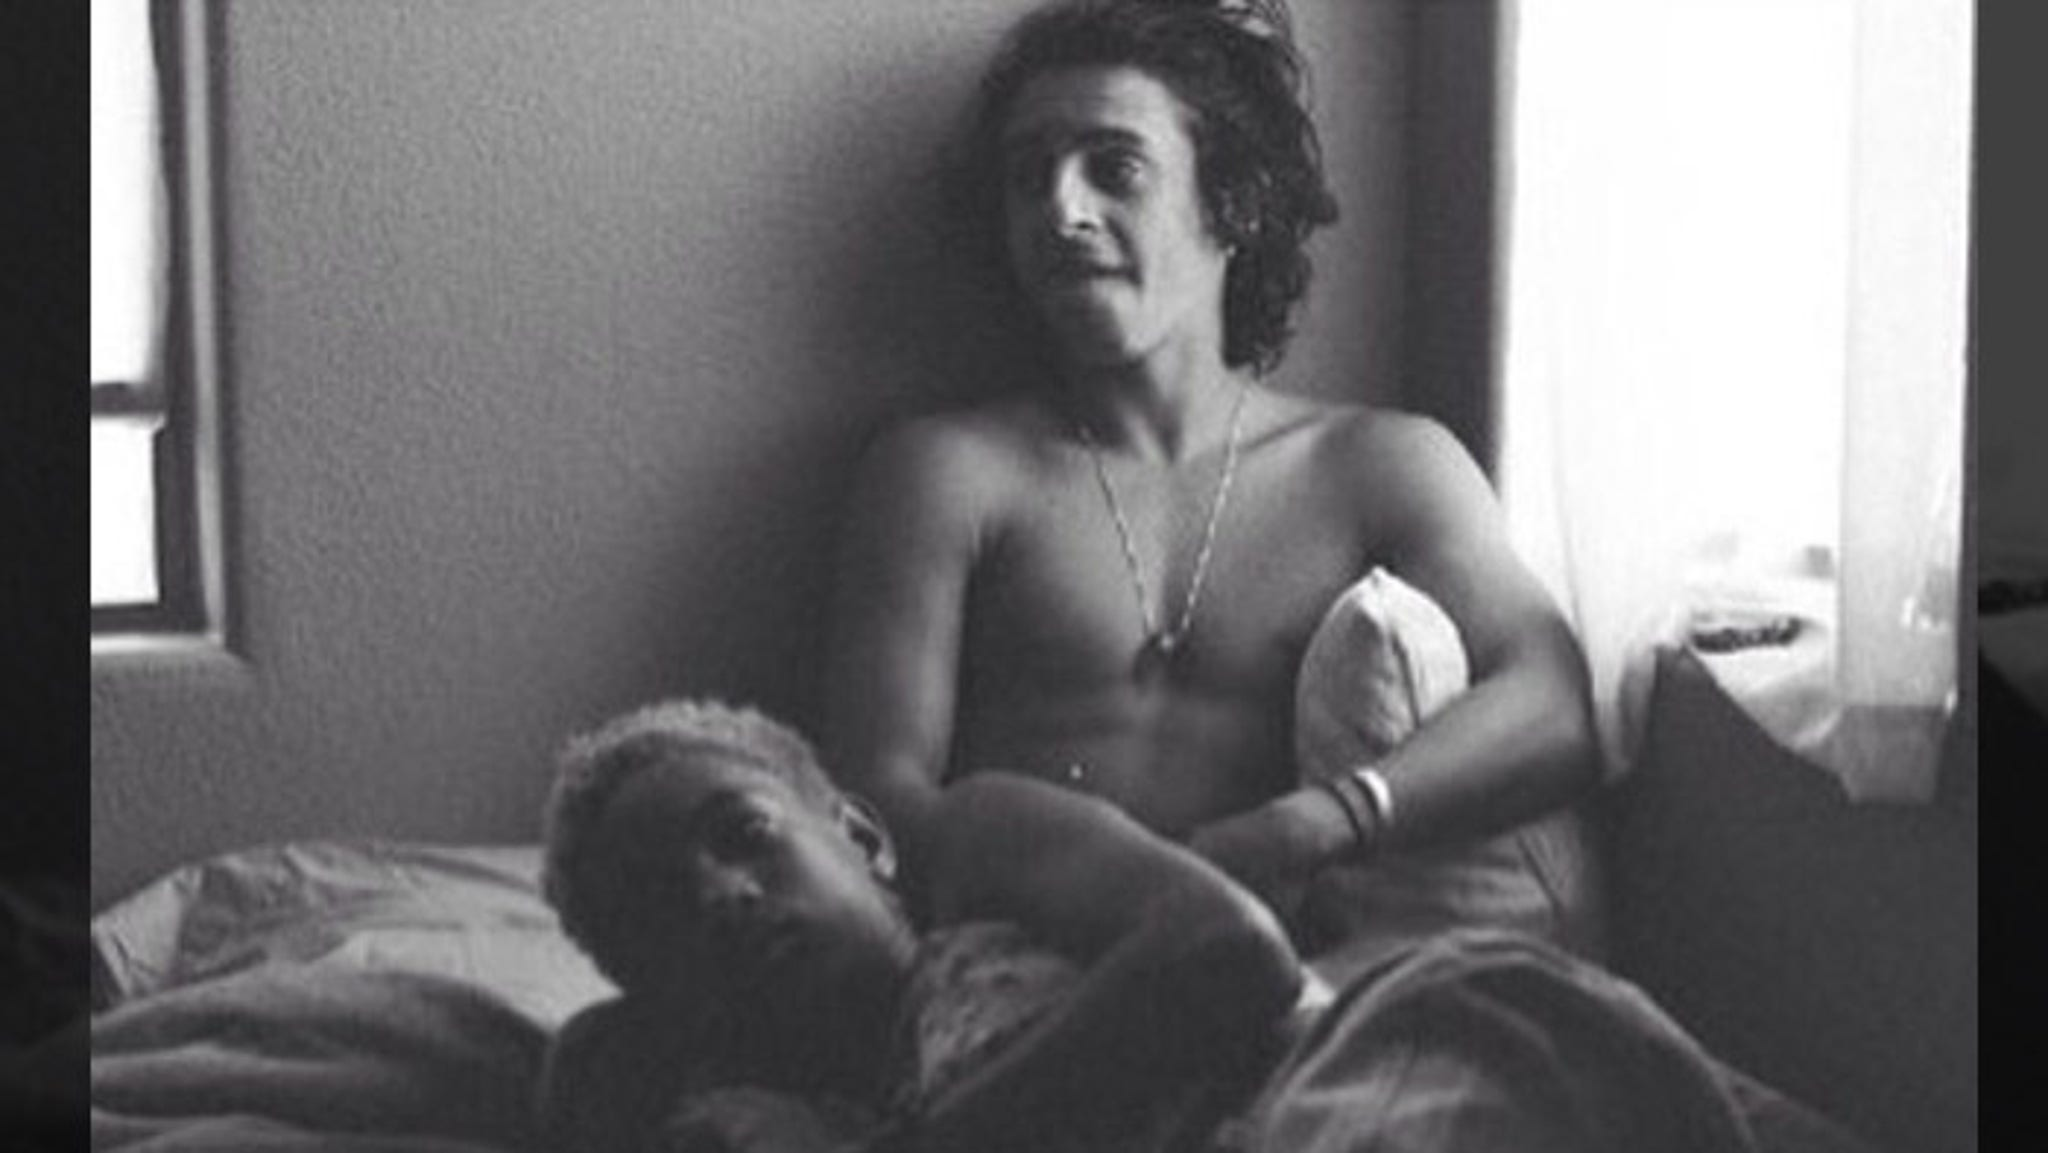 Will Smith S Daughter Willow Smith In Bed With 20 Year Old Moises Arias